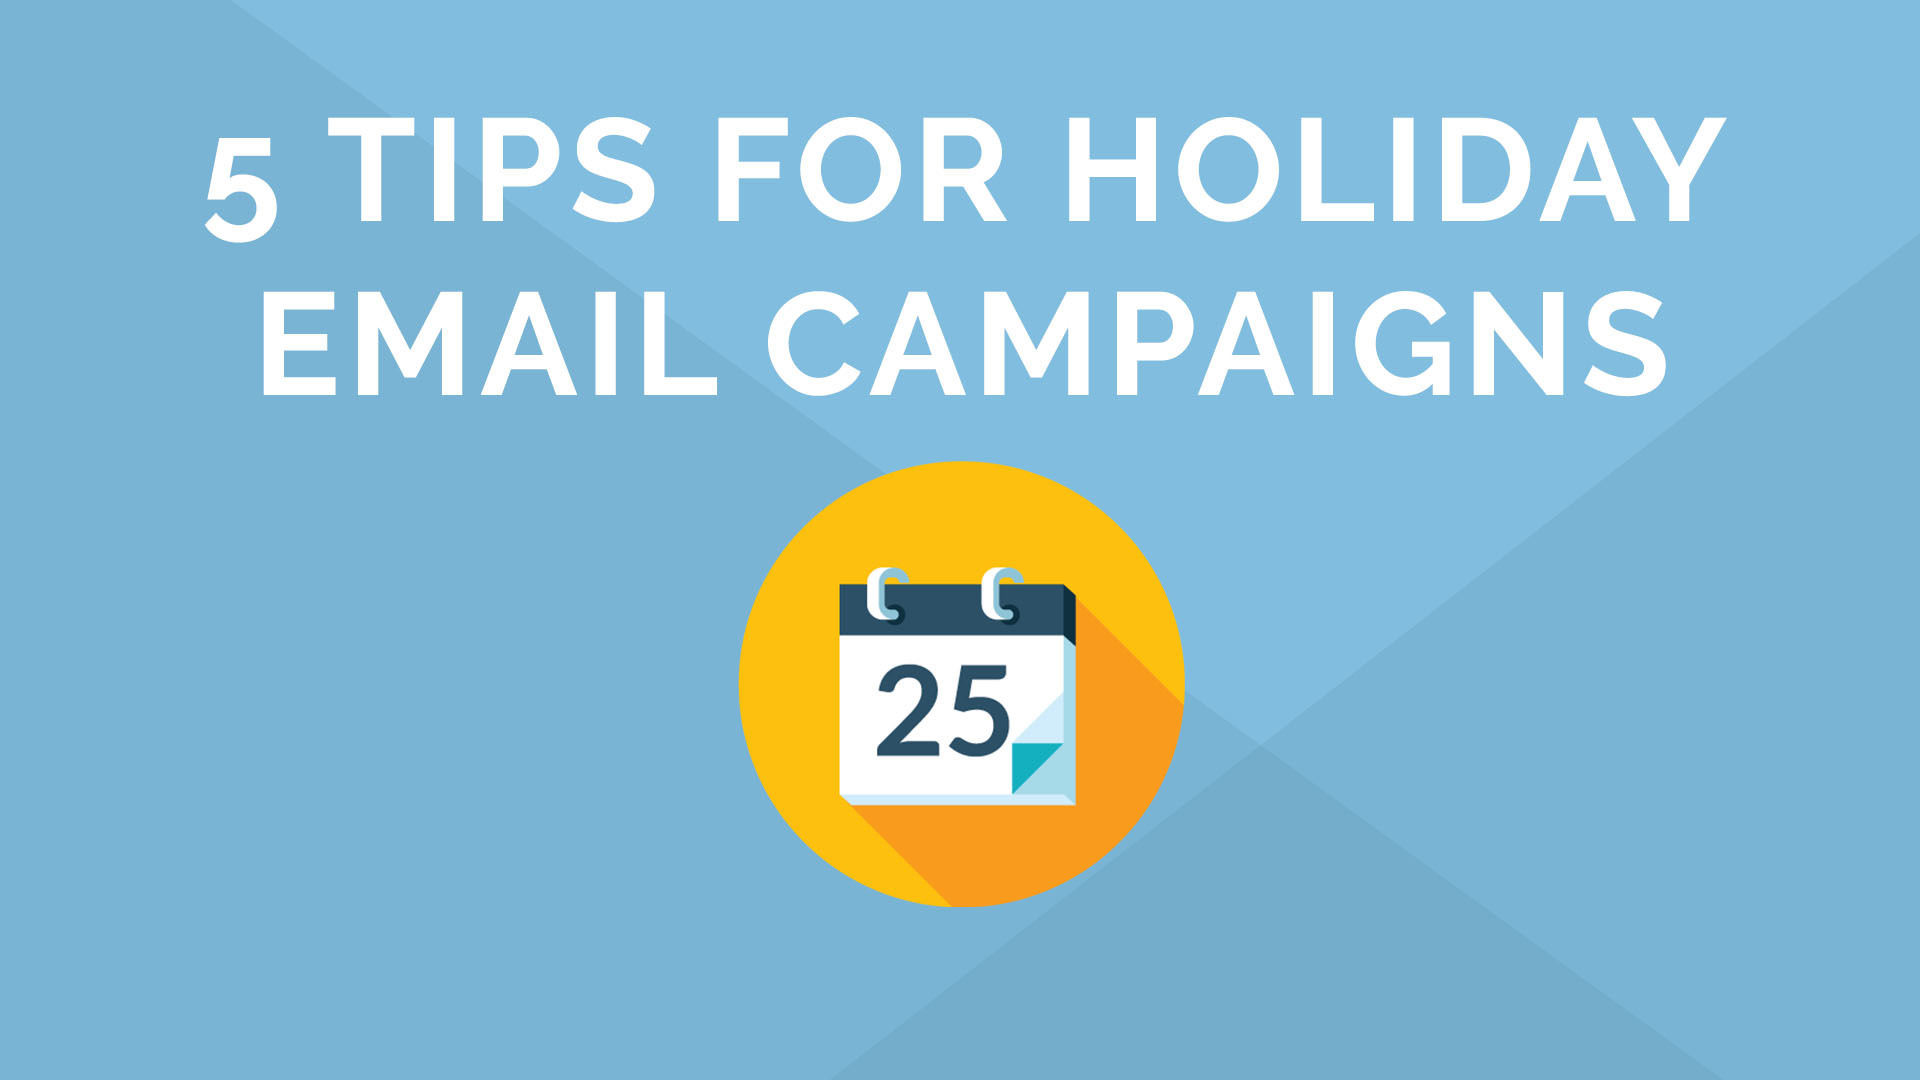 5 Tips for Holiday Email Campaigns